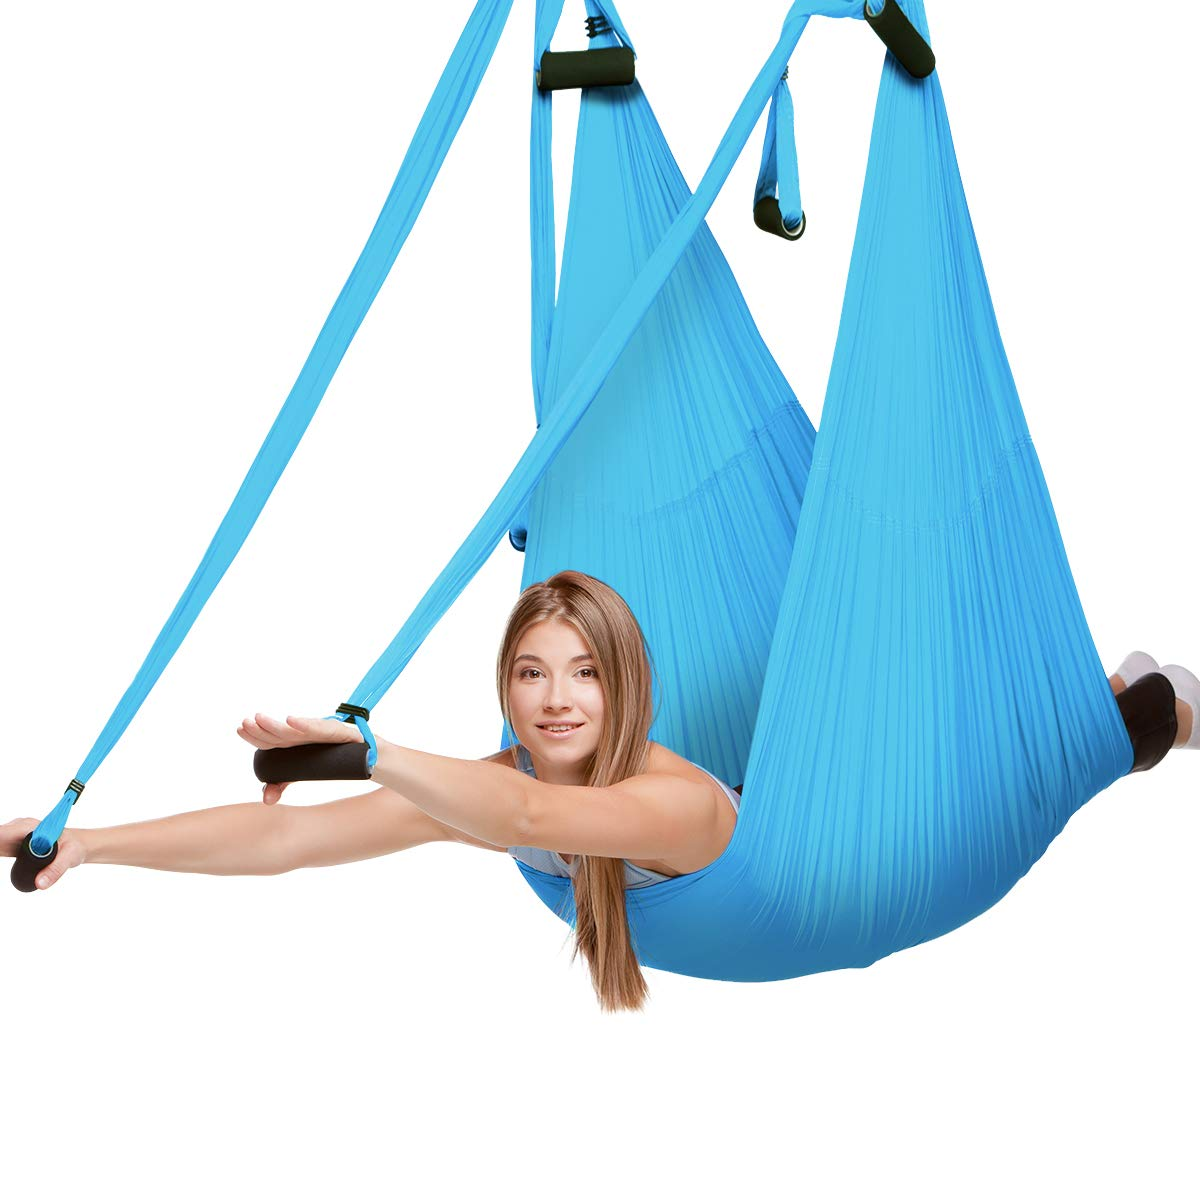 LOFTER Yoga Trapeze, Sturdy Nylon Aerial Yoga Swing Wide Yoga Hammock Kit for Antigravity Yoga, Stretching, Inversion, Indoor/Outdoor Exercises Aerial Trapeze, Helped with Flexibility, Back/Neck Pain